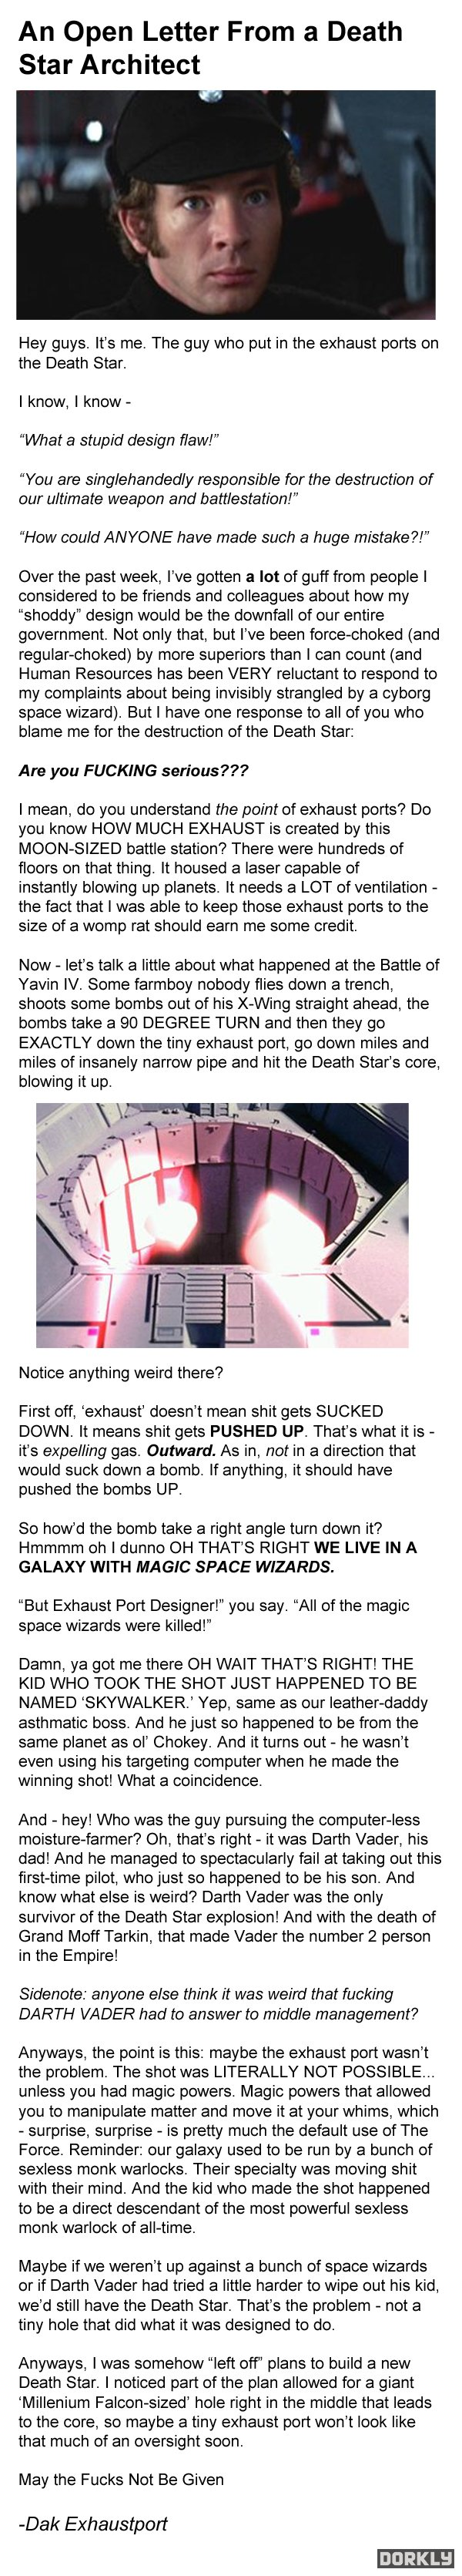 """Hi! It's me, Dak Exhaustport"" - Death Star's architect finally answer the complaints about the exhaust port. - Imgur"